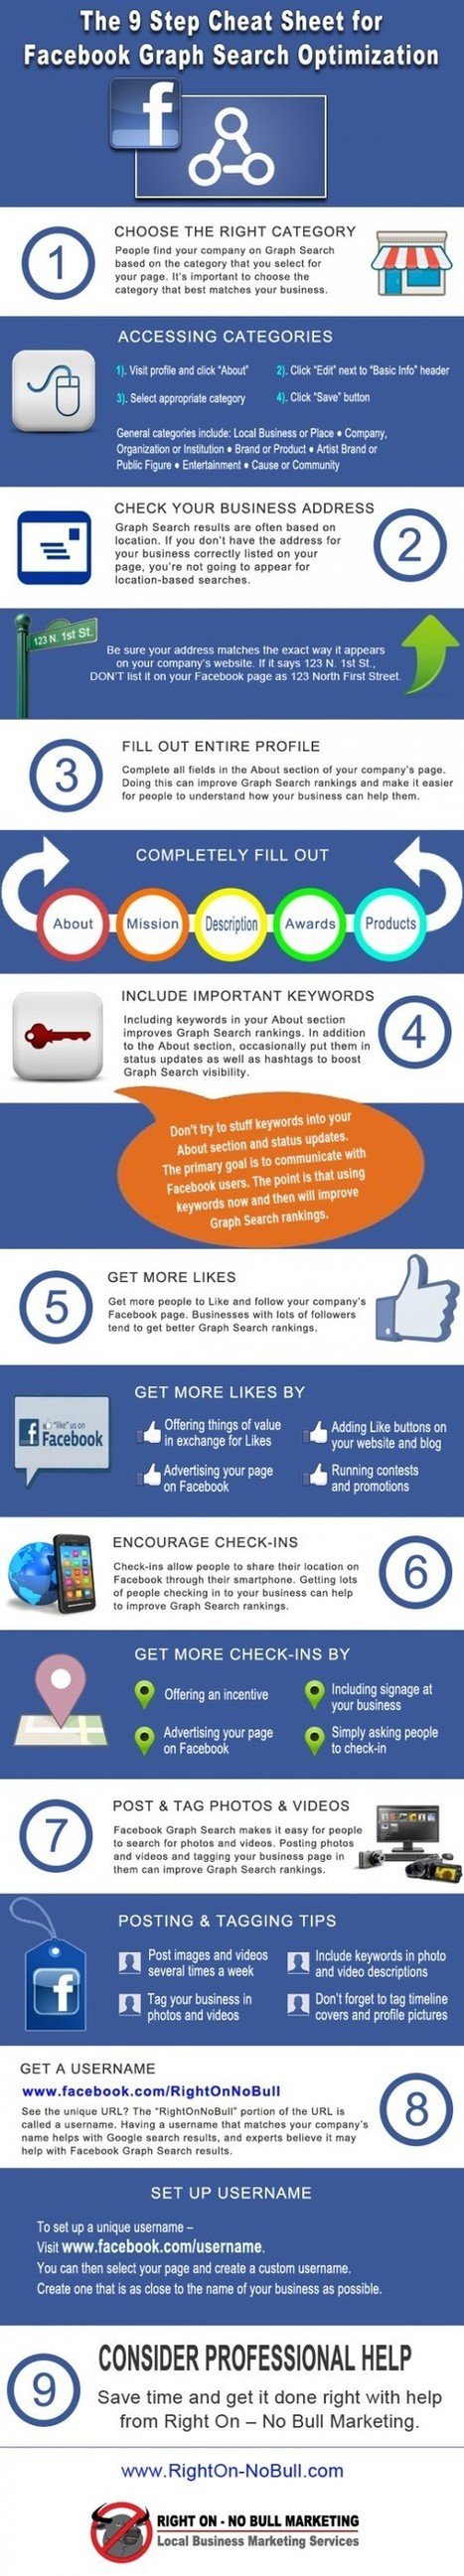 9 Conseils pour Optimiser votre Page Facebook pour le Graph Search | Emarketinglicious | Image Digitale | Scoop.it